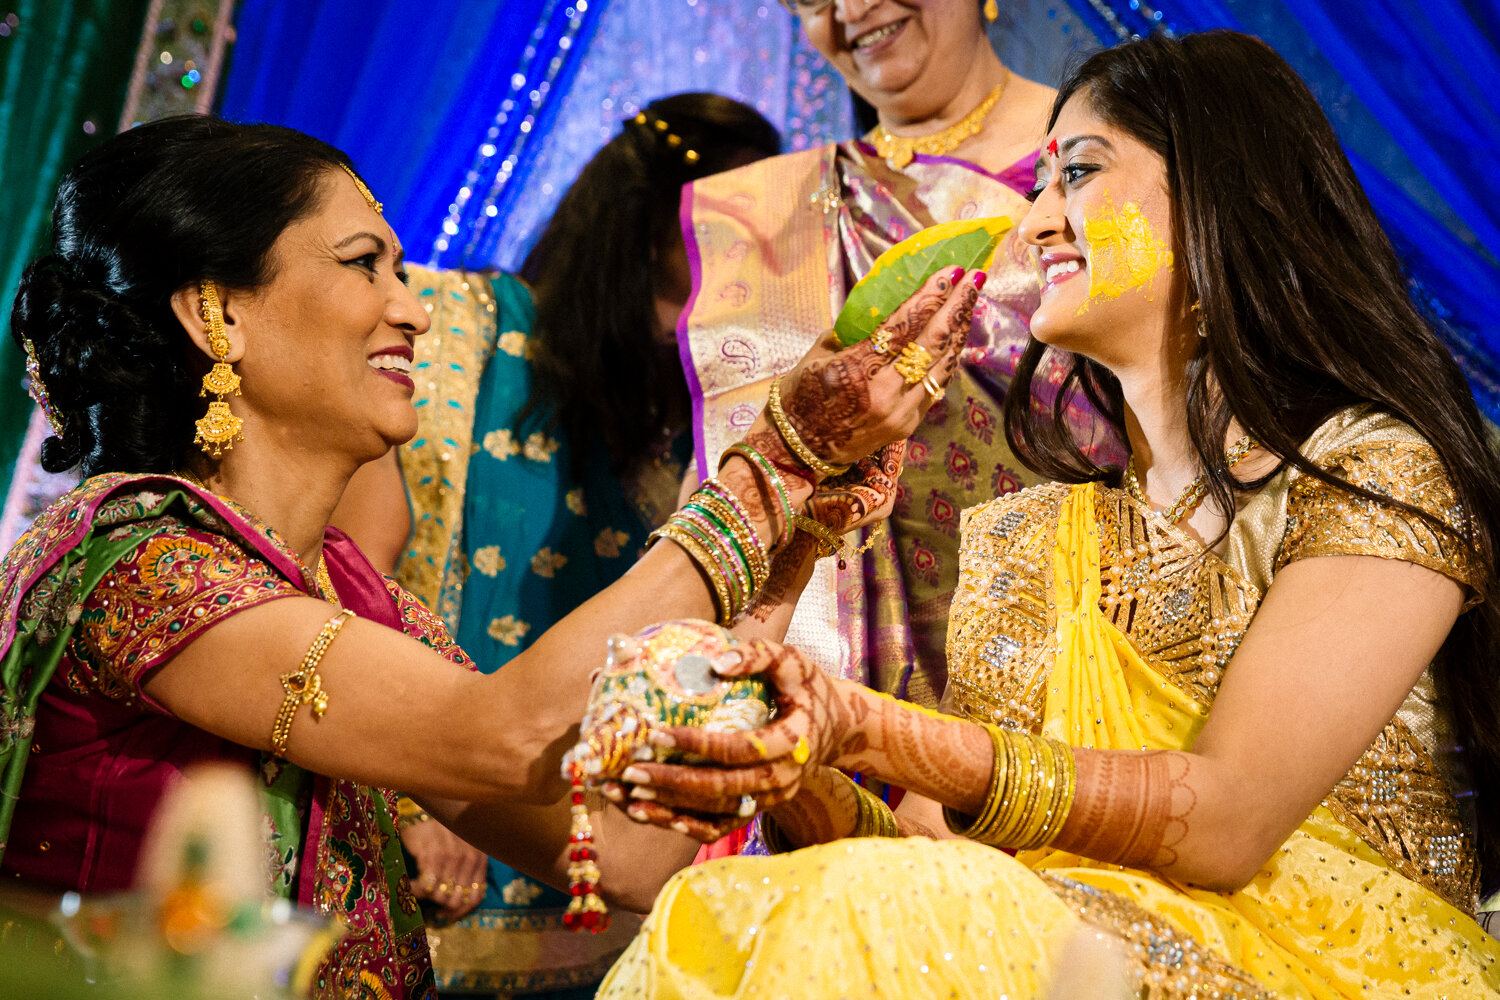 austin-texas-indian-wedding-photographer-edward-bennett-42.jpg